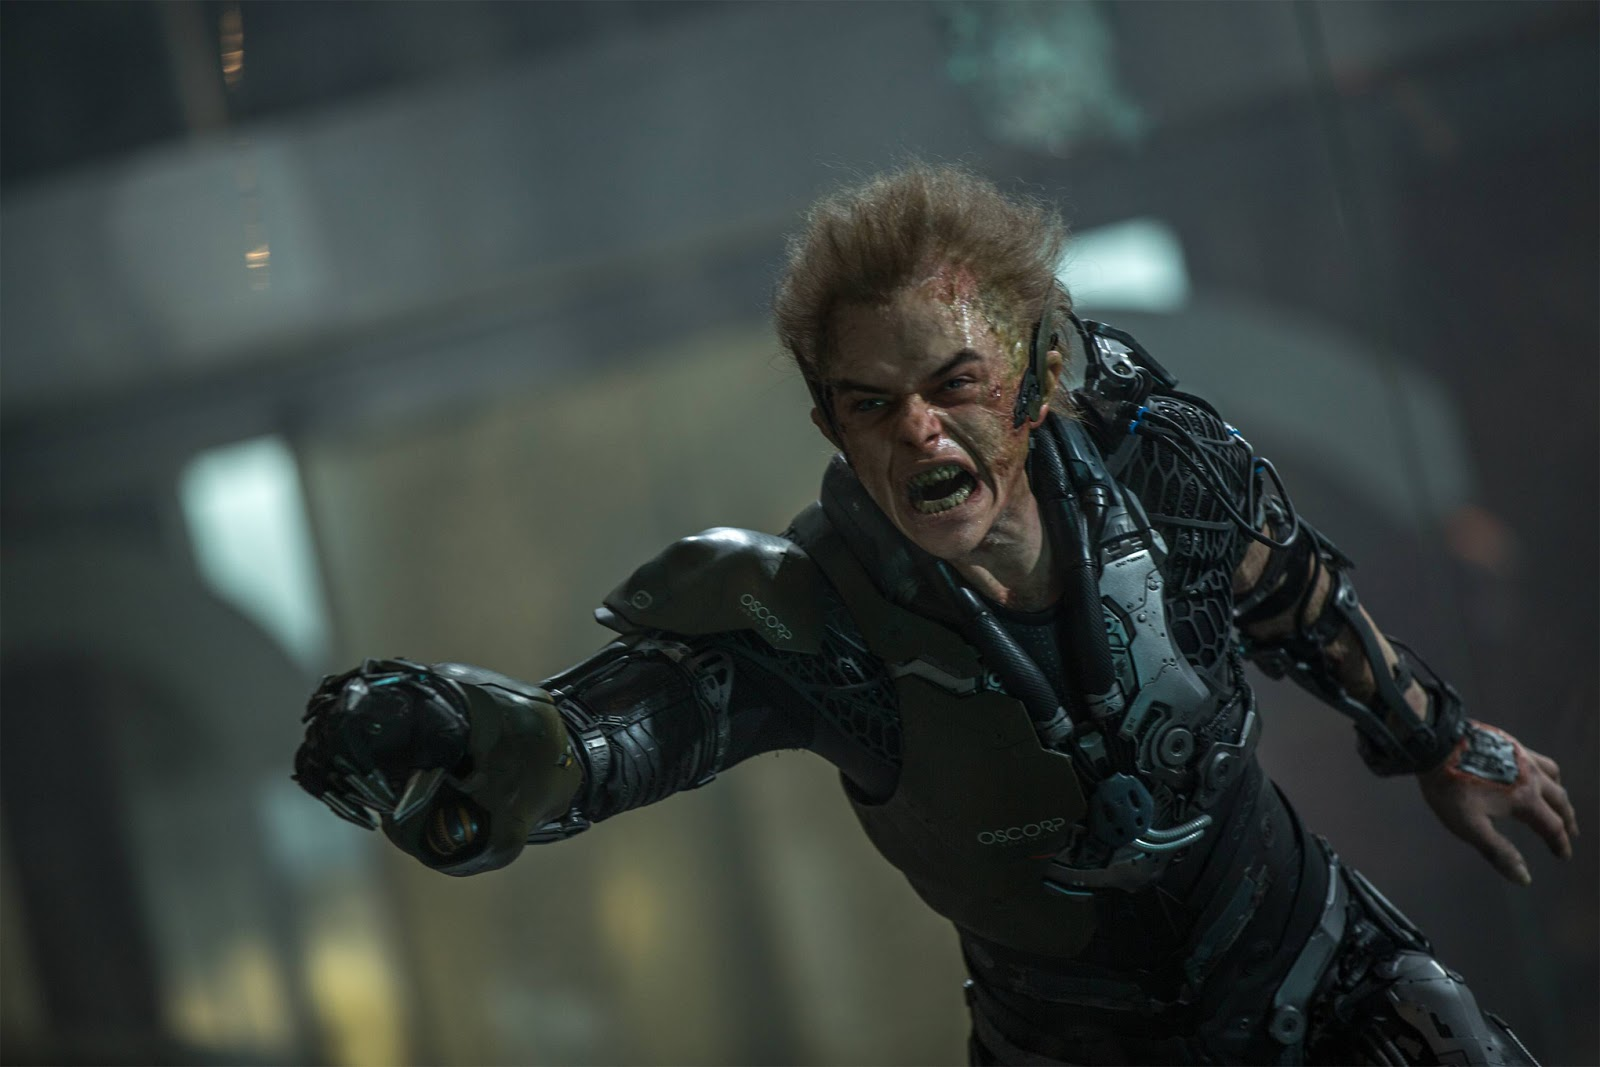 The Green Goblin (Dane DeHaan) in The Amazing Spider-Man 2 (2014)